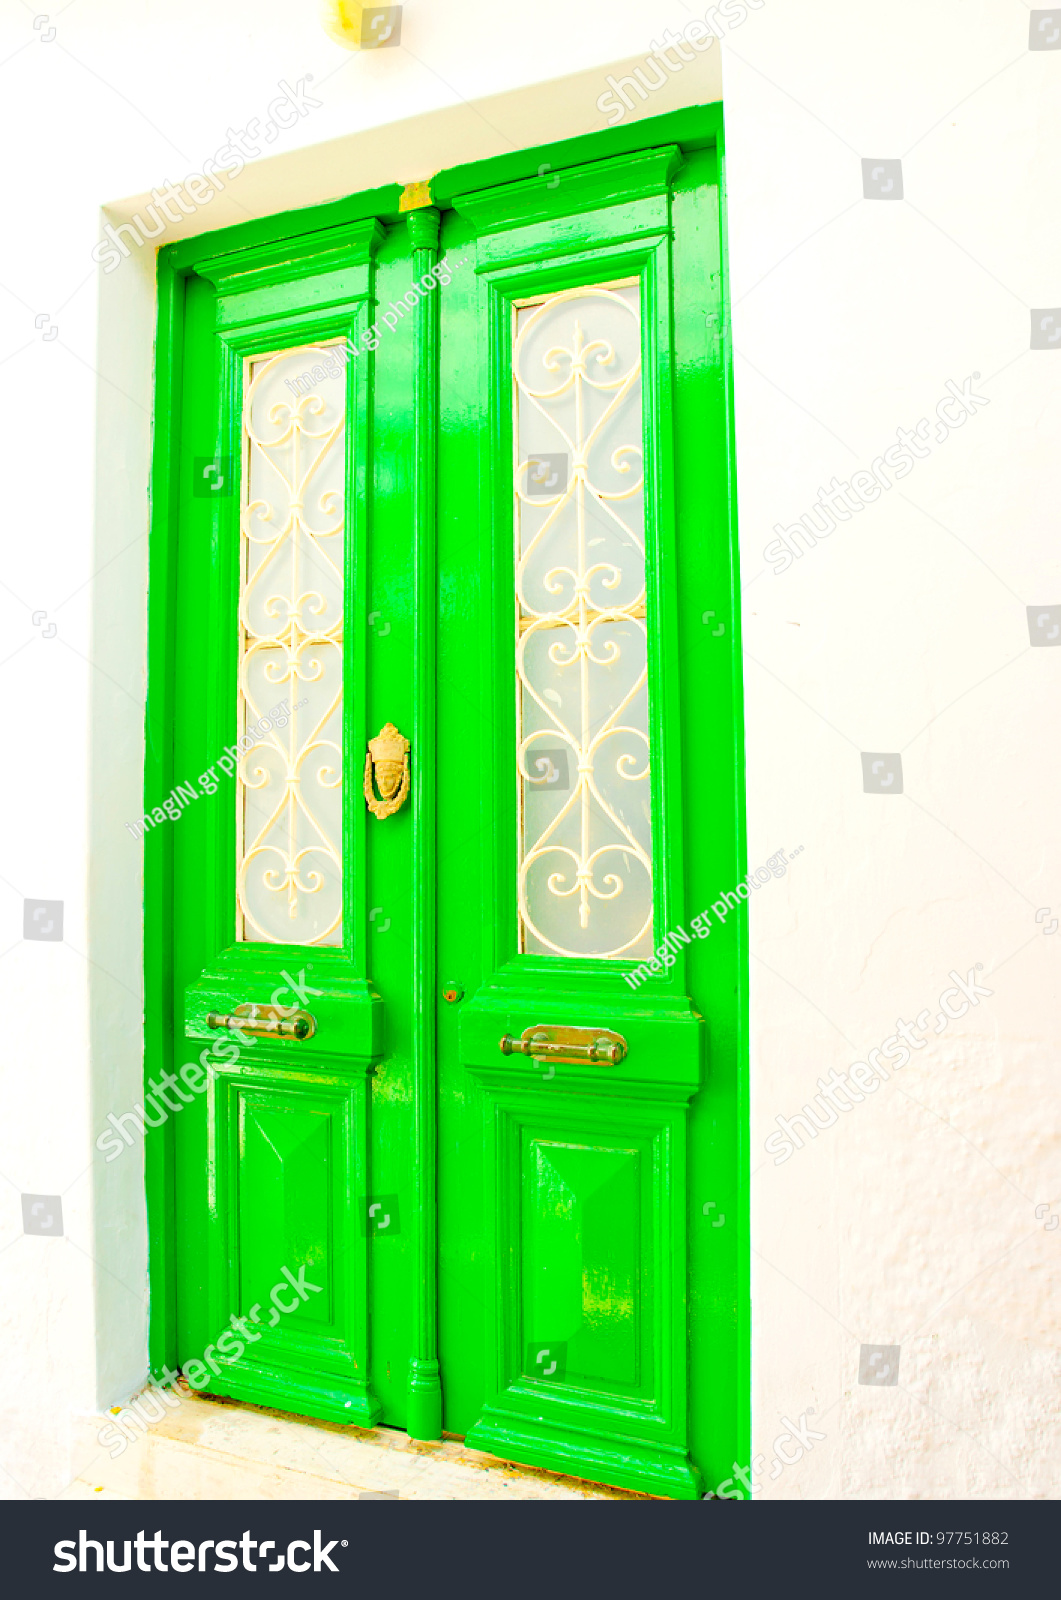 Old beautiful traditional house in chora the capital of amorgos island - A Beautiful Green Colored Door Of A Traditional Old House In Chora The Capital Of Amorgos